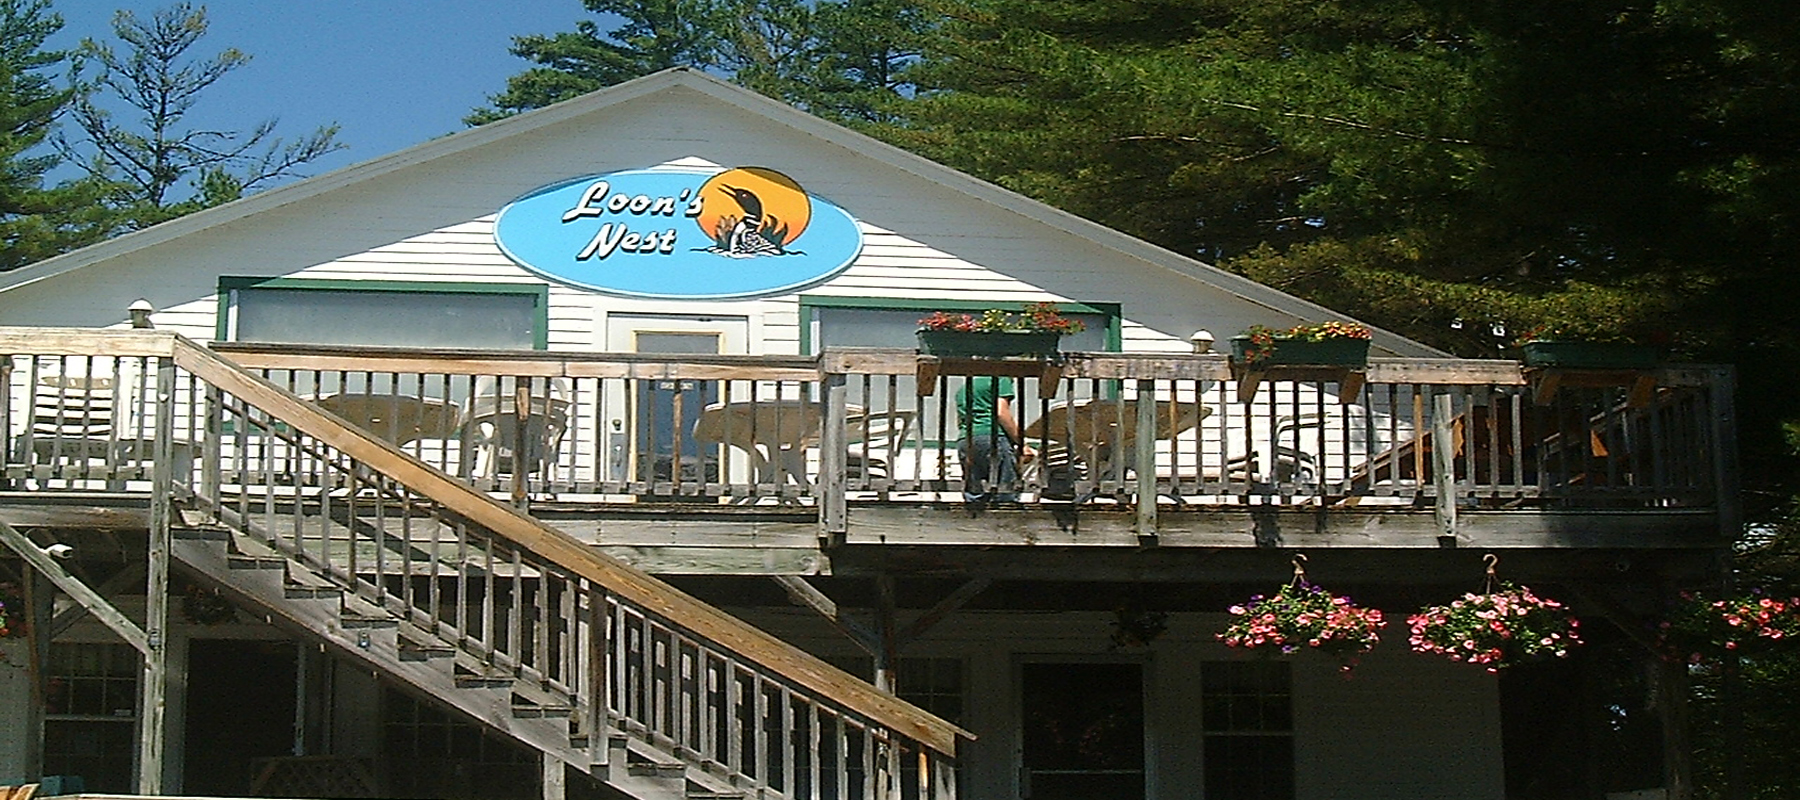 Loon's Nest Restaurant